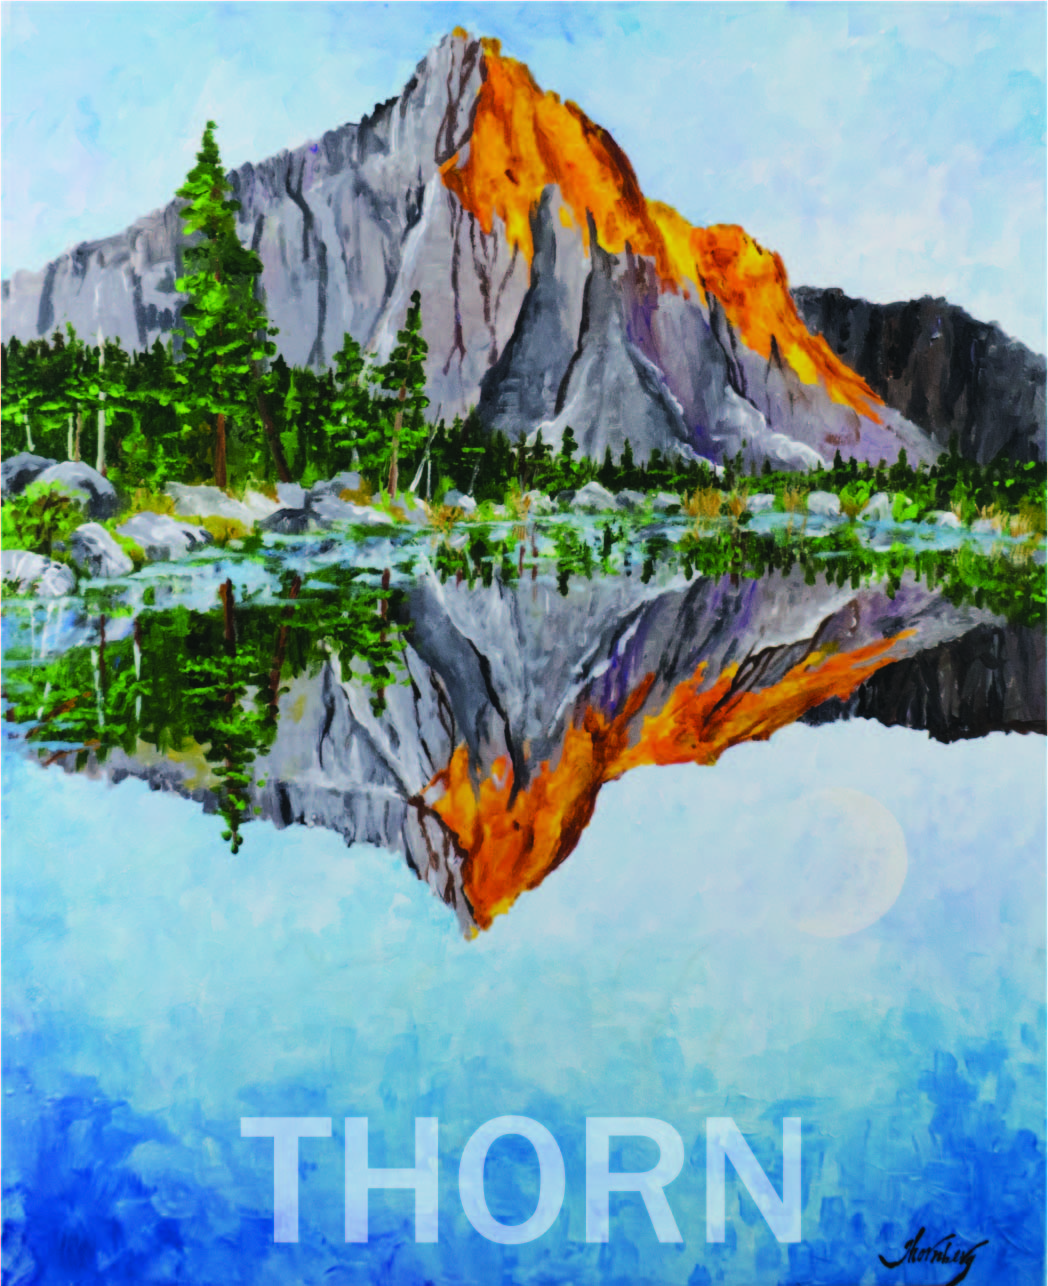 MOUNTAIN LAKE    Click on image for size and material options.   Prints Available from $39 - $500  Acrylic on Canvas  Original Art for Sale $1,500  2017  Artist: Karen Thornberg